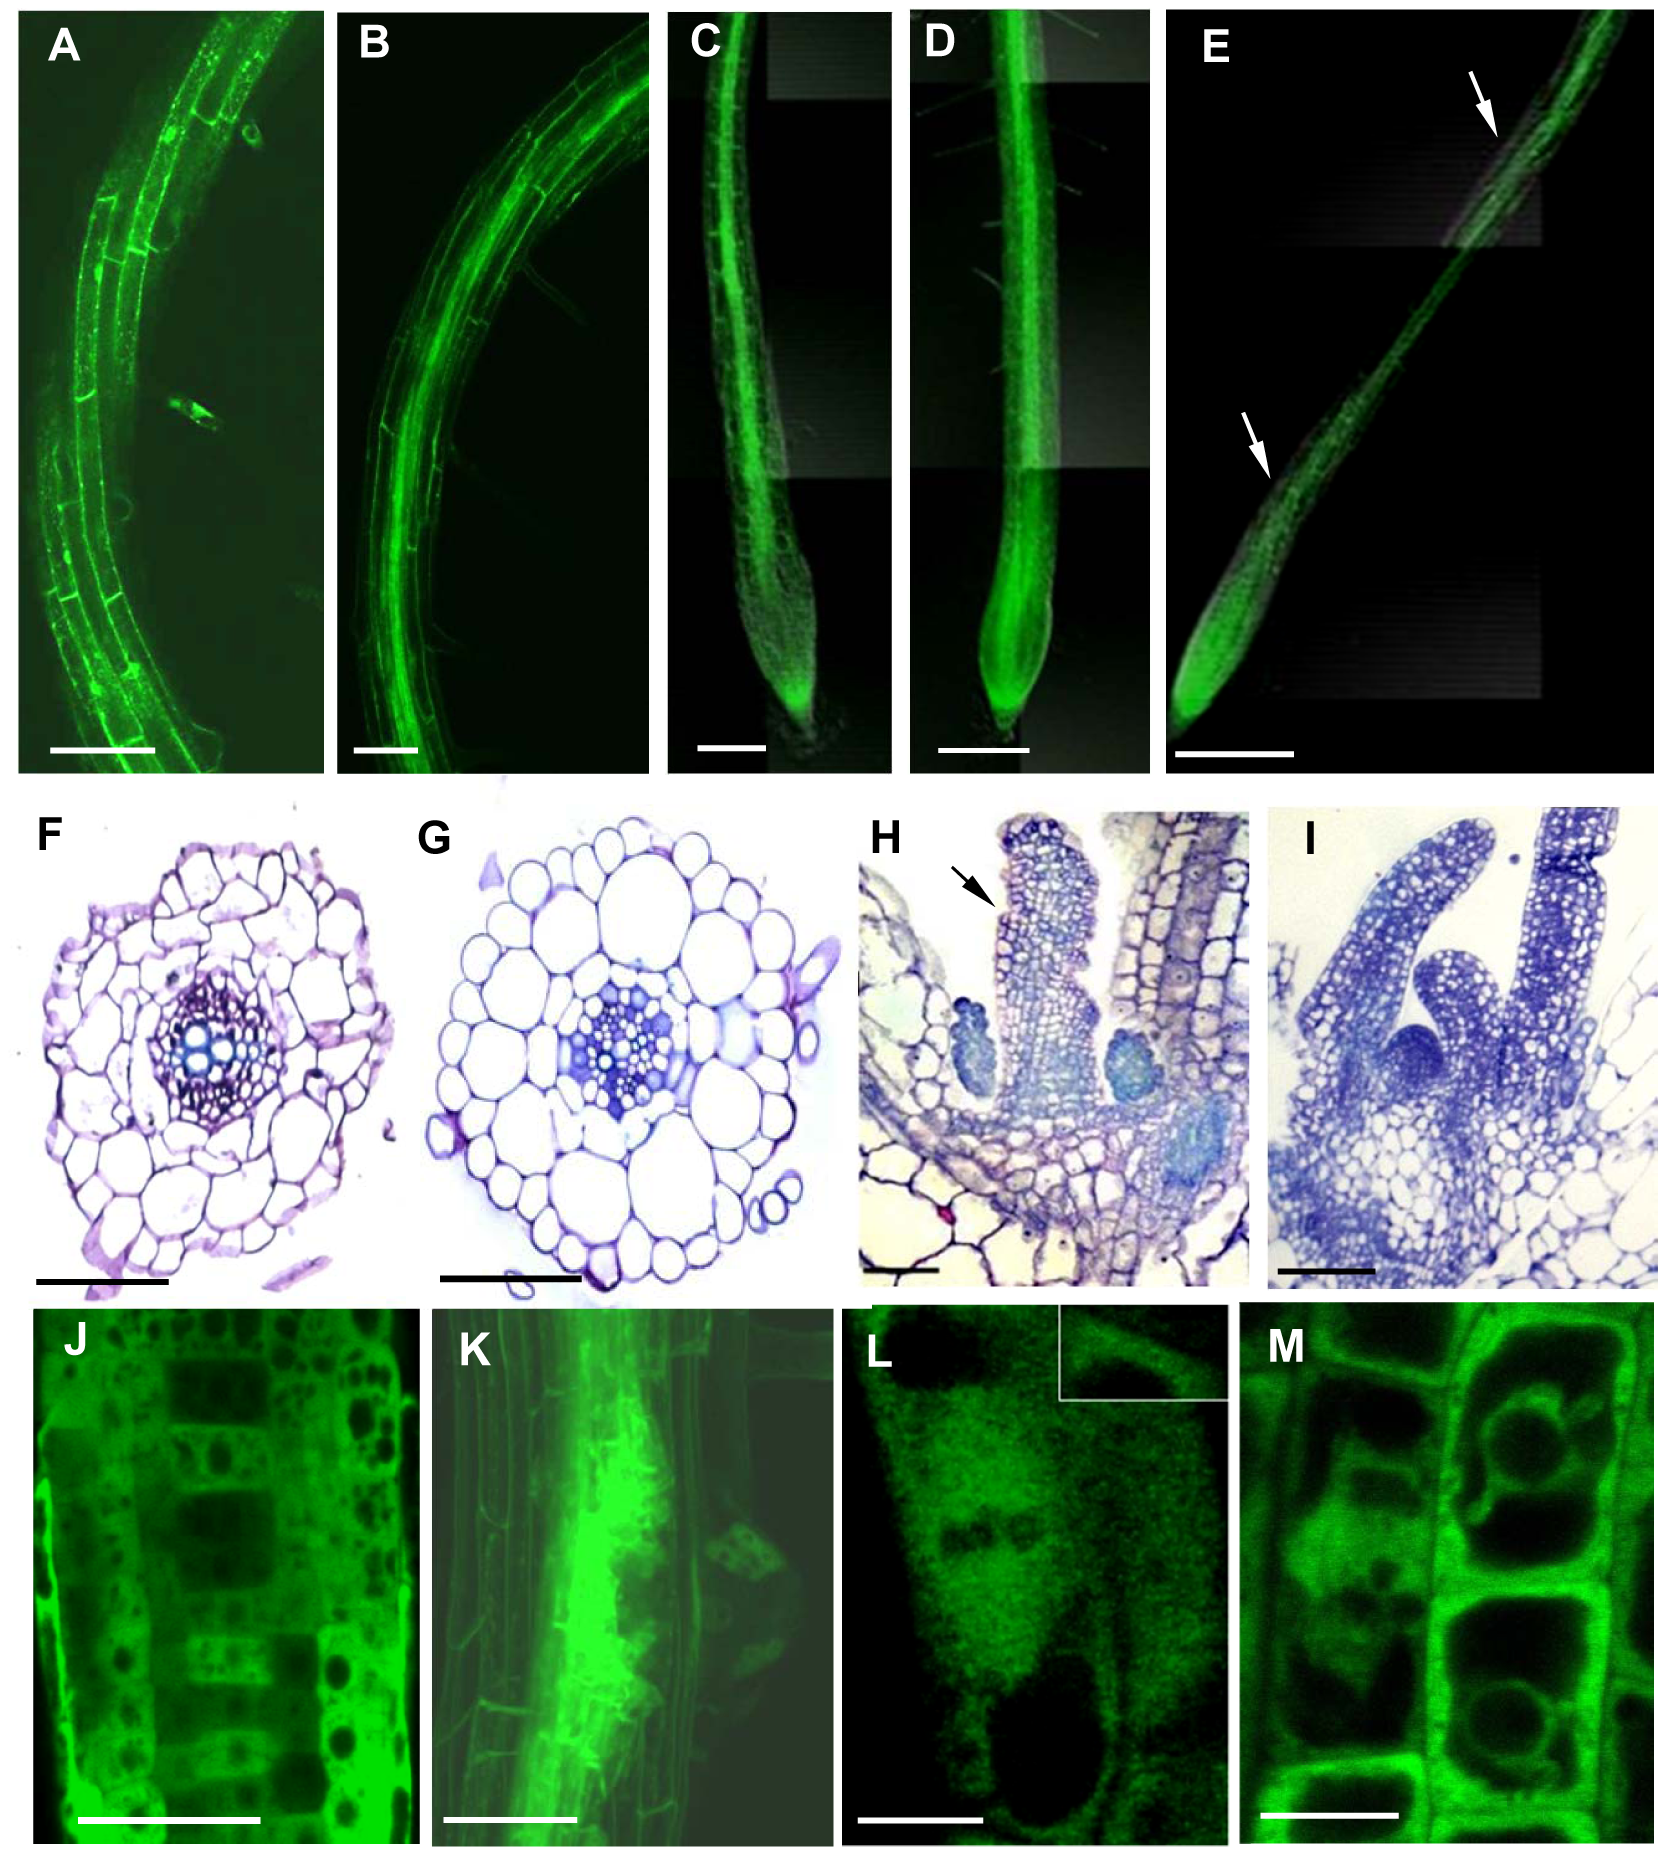 Ectopic Expression of γ-Tubulin in <i>Arabidopsis thaliana</i> Seedlings Causes Root Twisting and Leaf Curling.